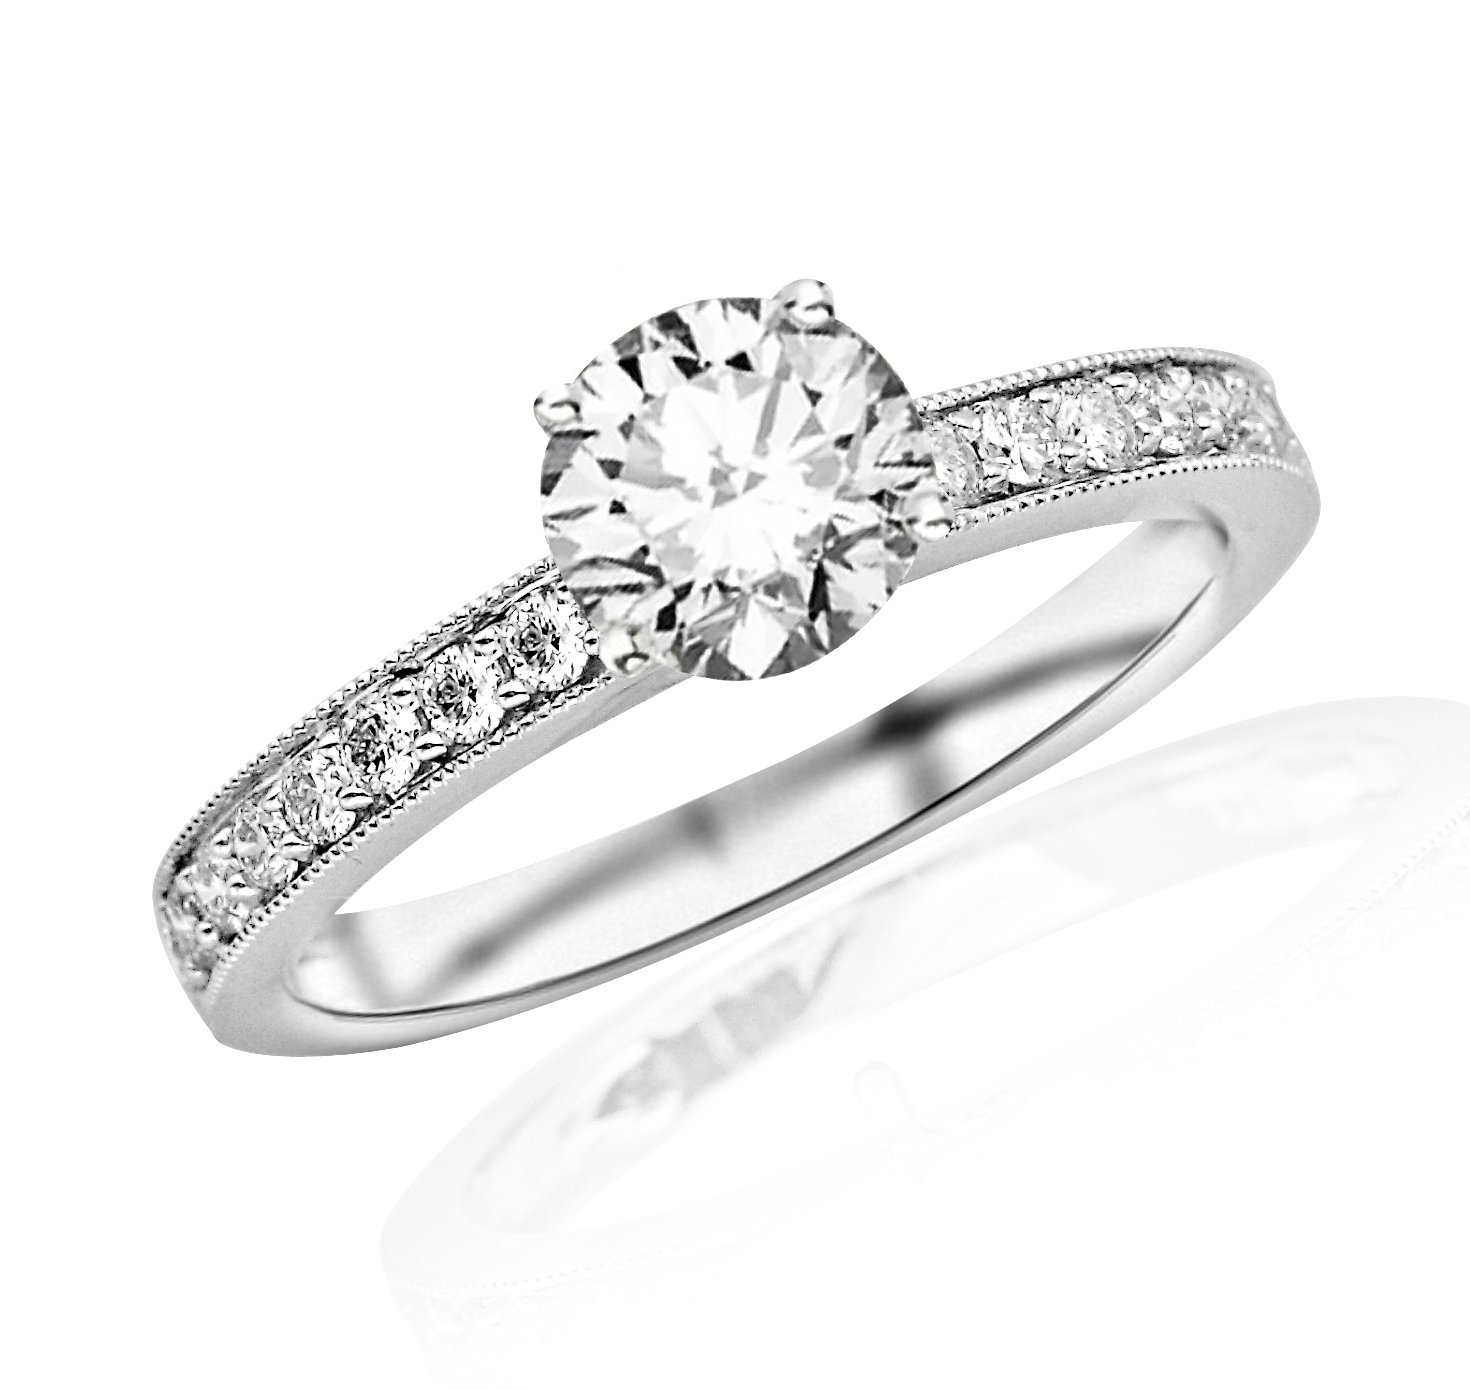 1.05 Carat Classic Side Stone Pave Set With Milgrain Diamond Engagement Ring 14K White Gold with a 0.75 Carat G-H SI2-I1 Round Brilliant Cut/Shape Center